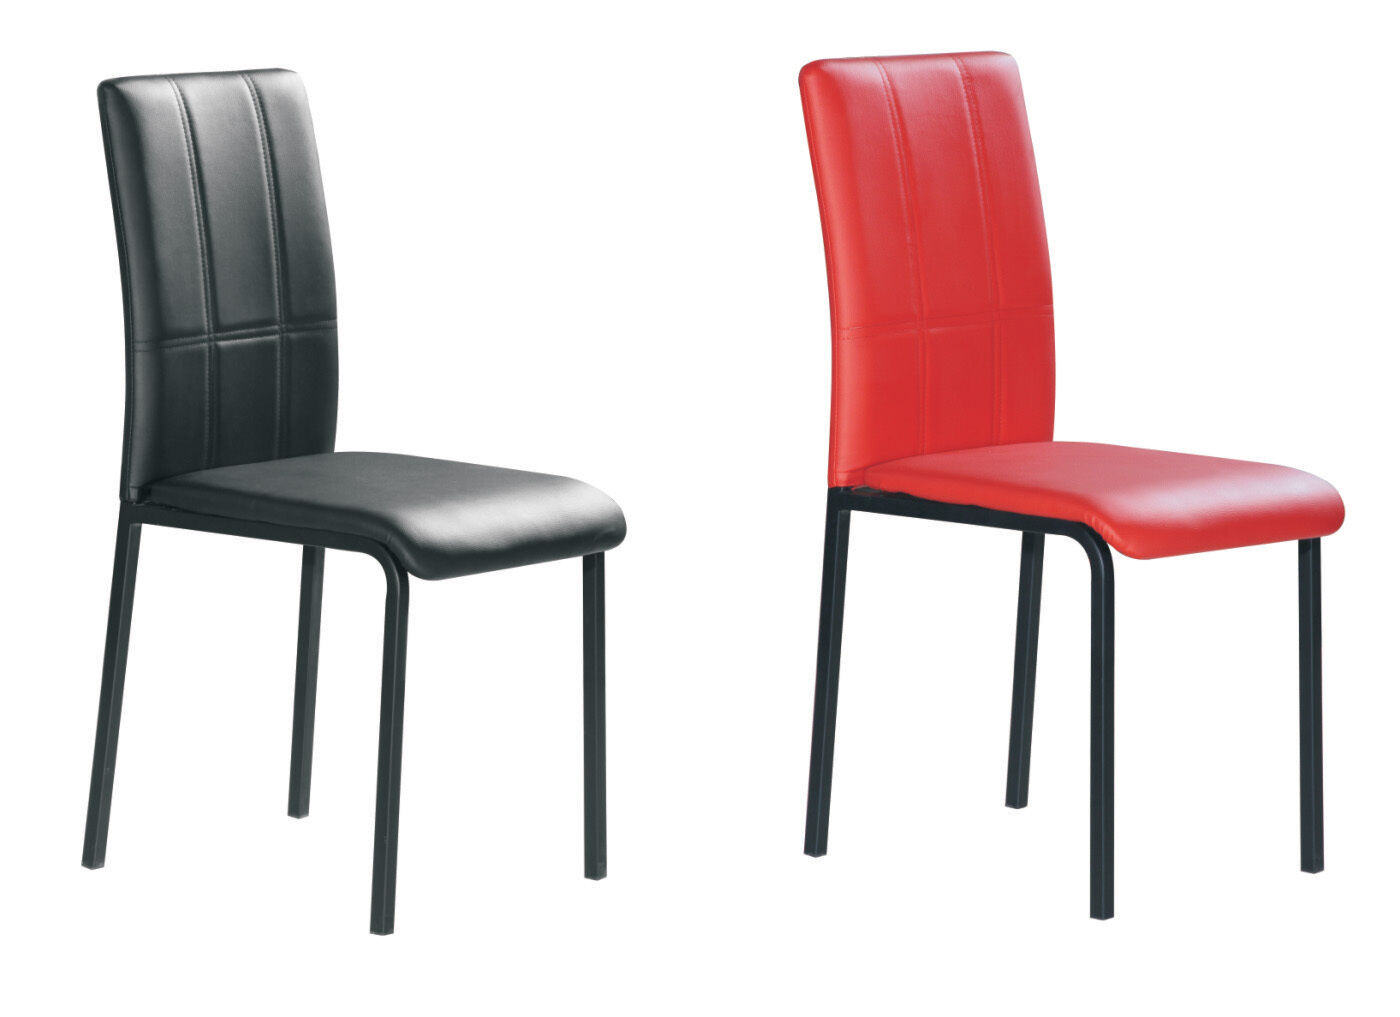 Dining chairs faux leather foam padded red and black with for Black leather dining chairs